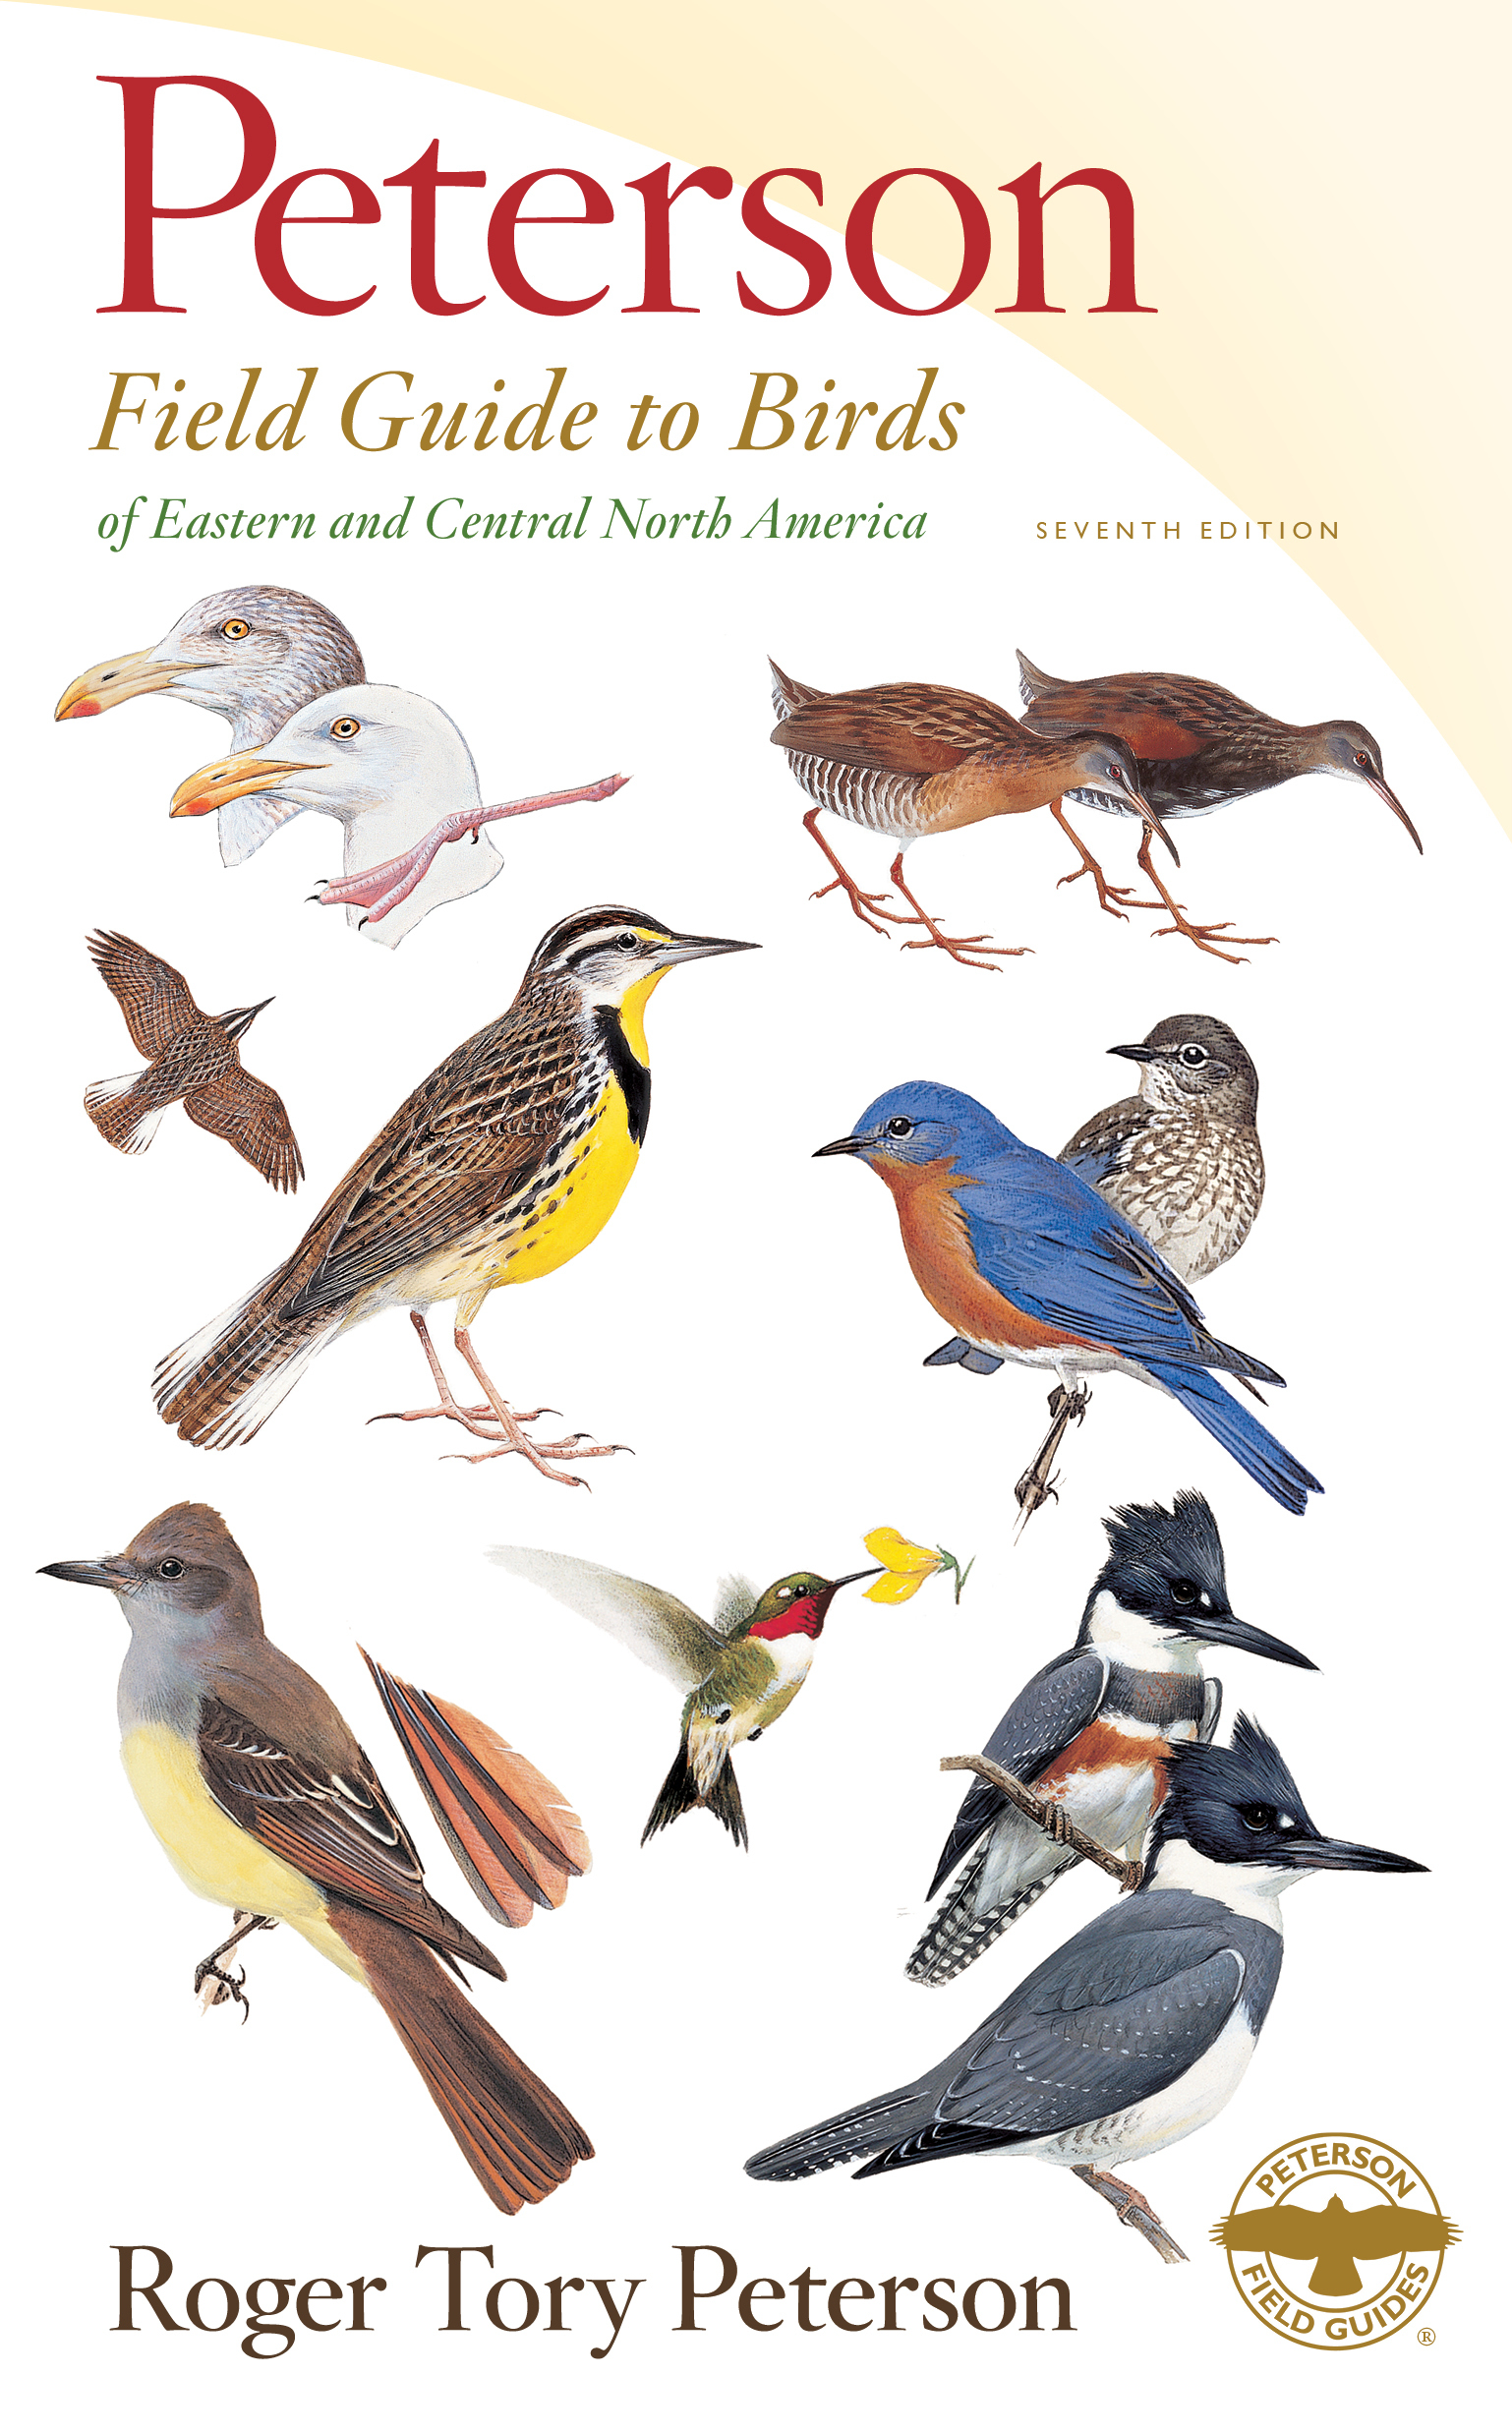 Peterson Field Guide to Birds of Eastern  Central North America, Seventh Edition